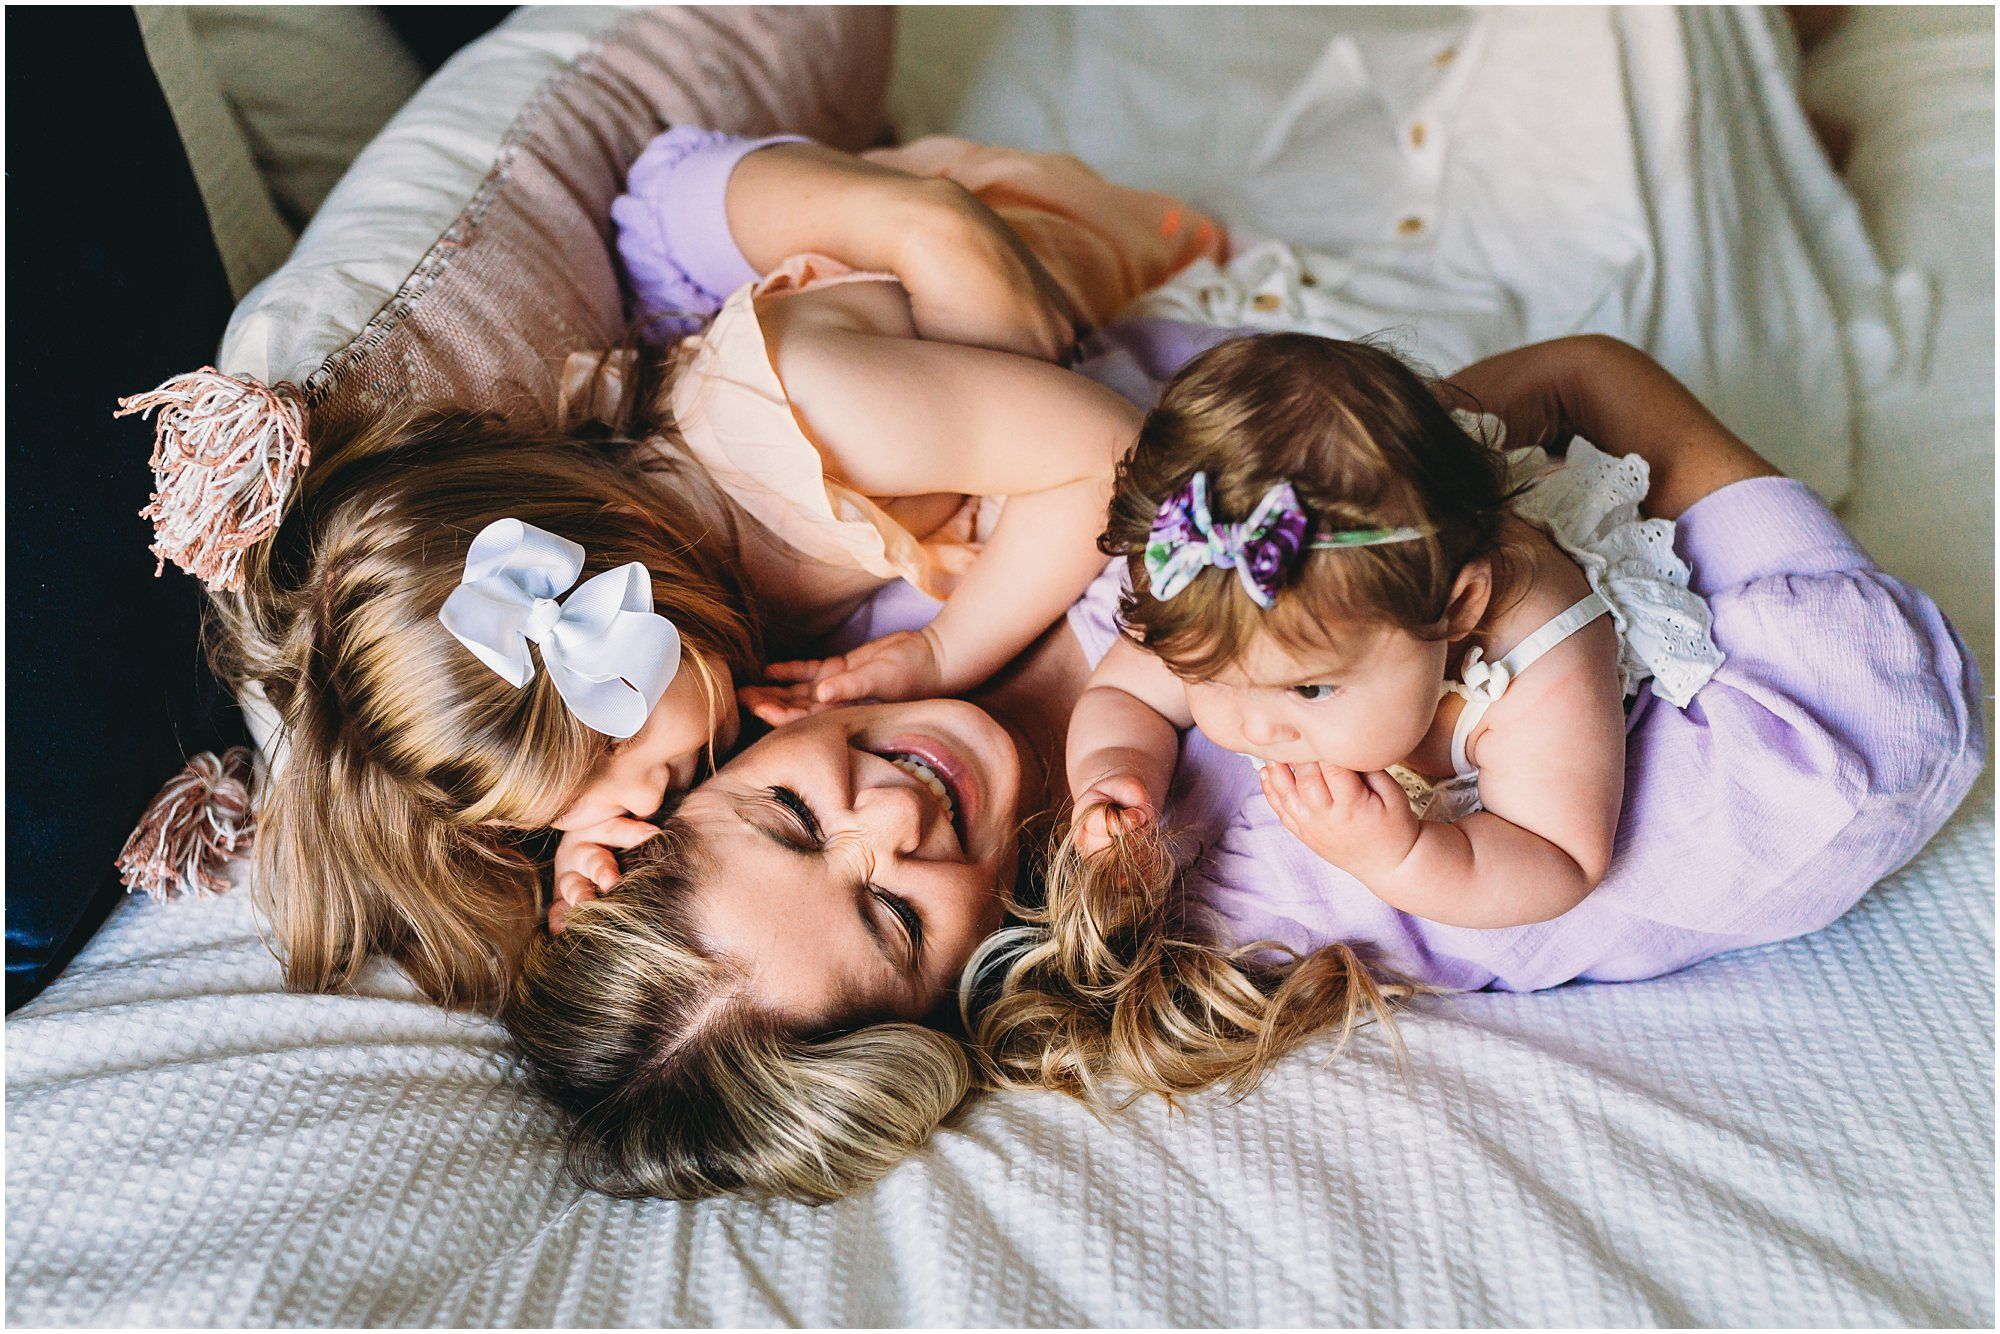 mother and daughters smiling and happy - Sabrina Gebhardt Photography